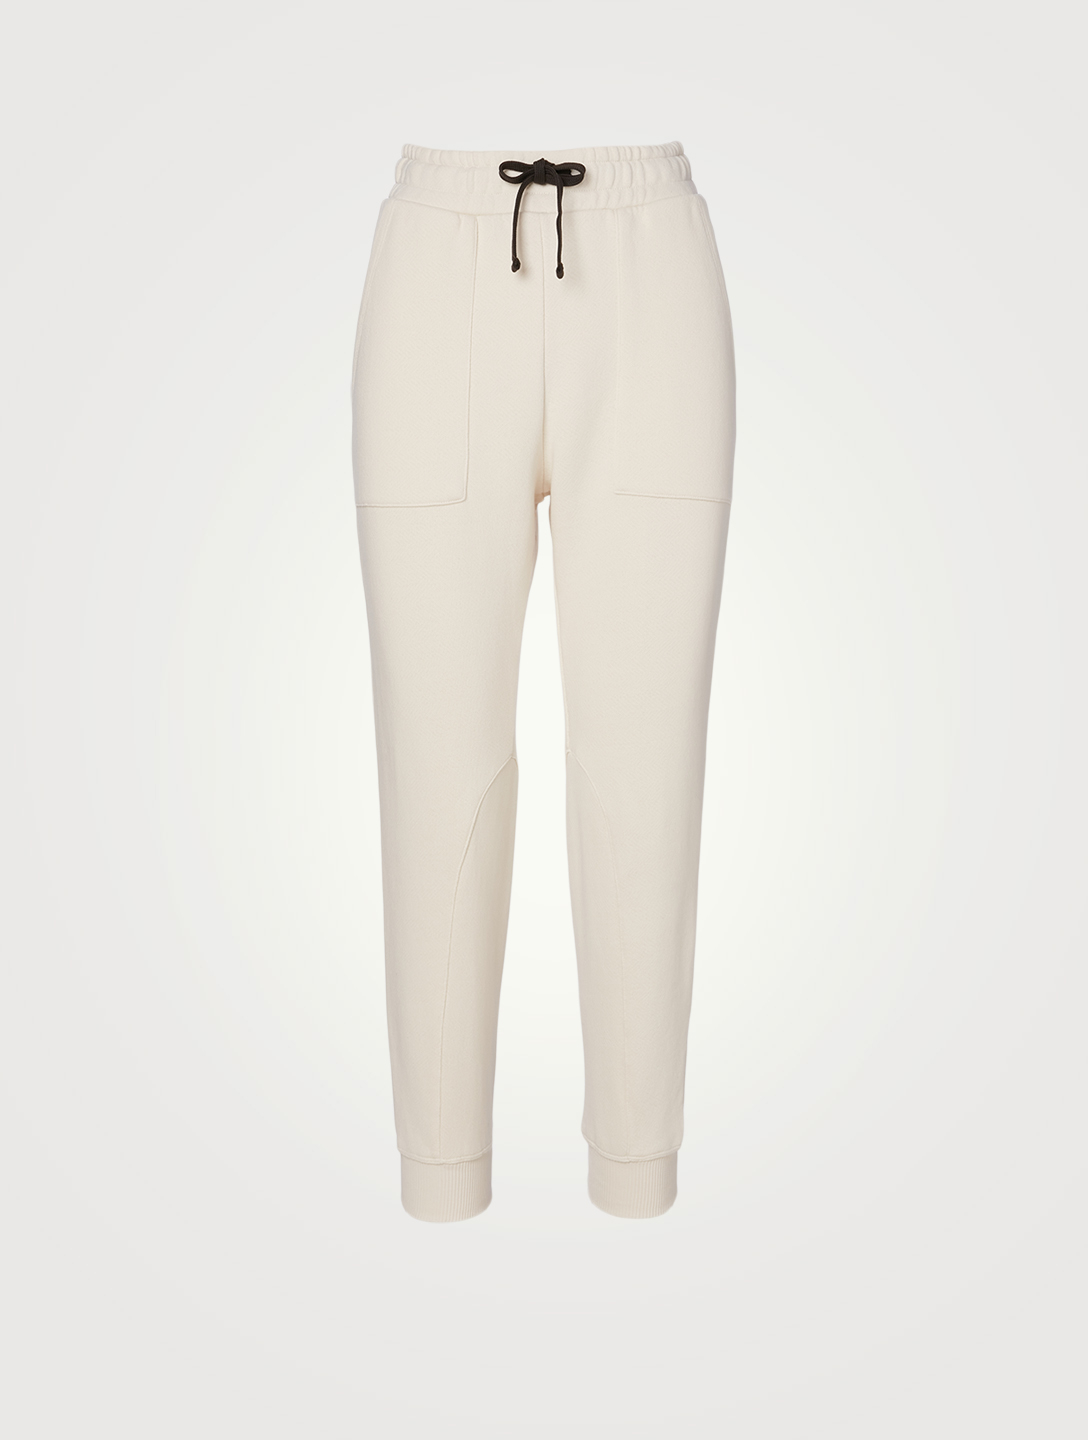 BA&SH Toldeo Cotton Sweatpants Women's White